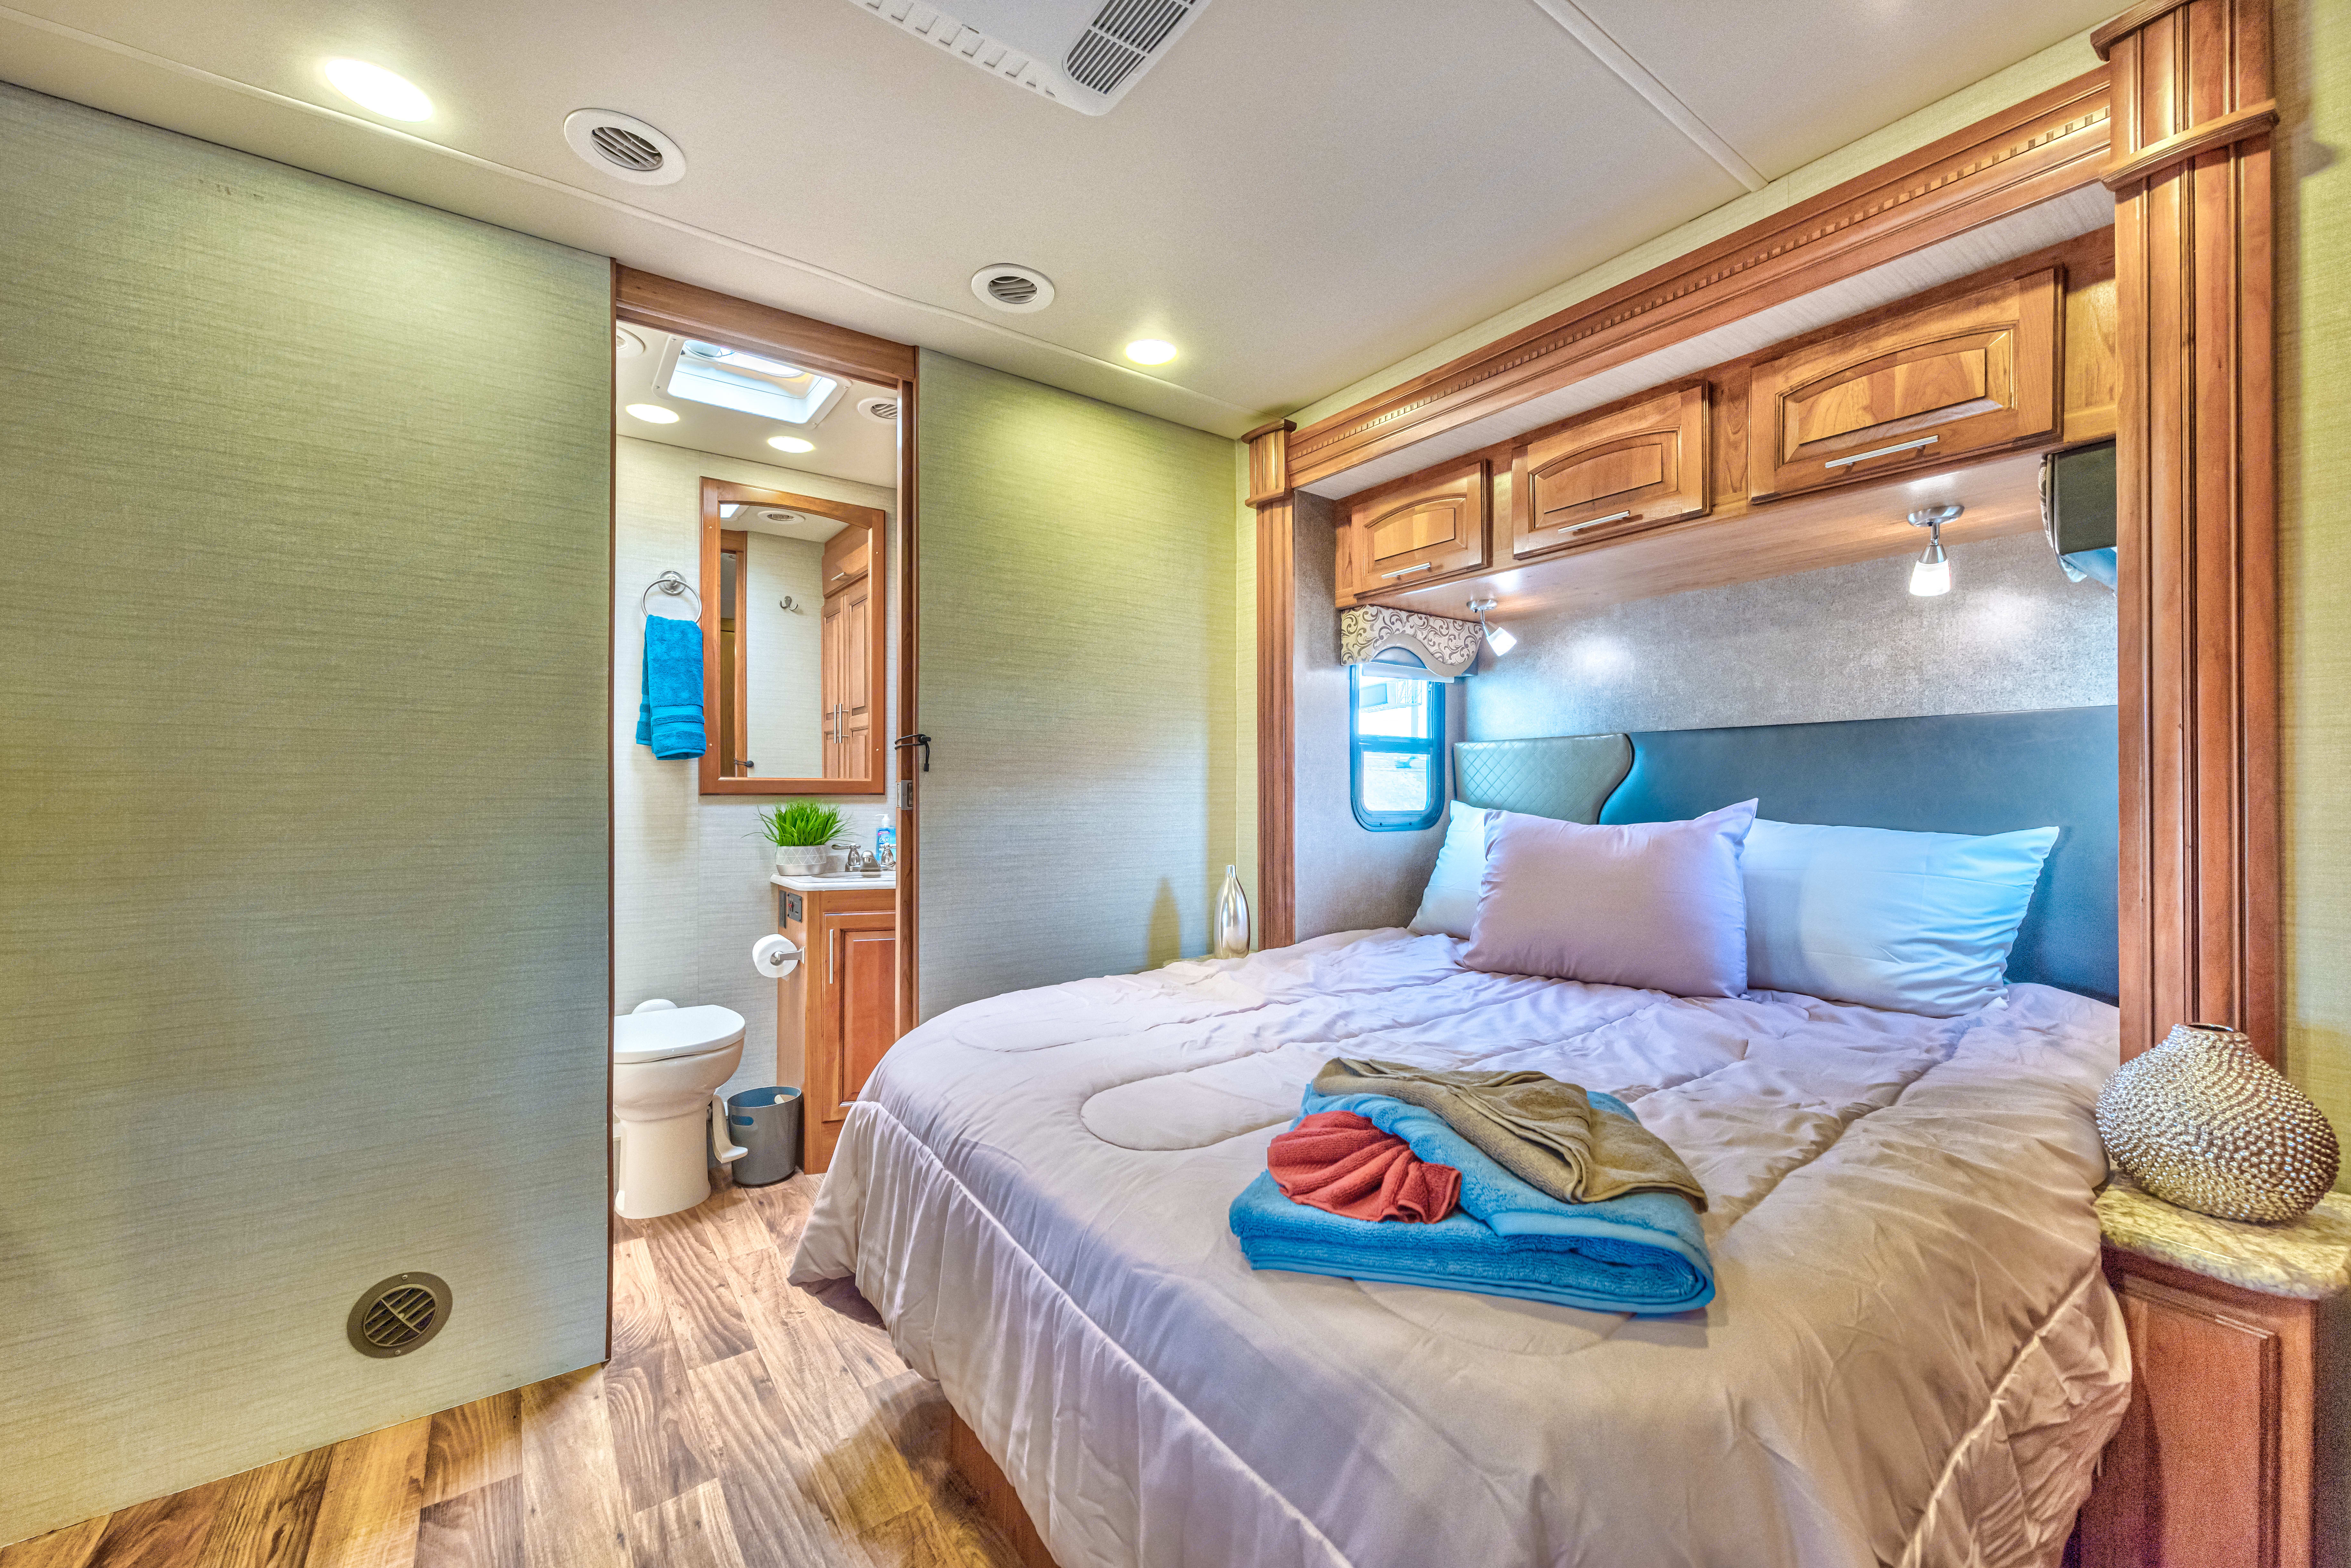 MASTER BED -lay down like a king and queen!. Jayco Precept 2017